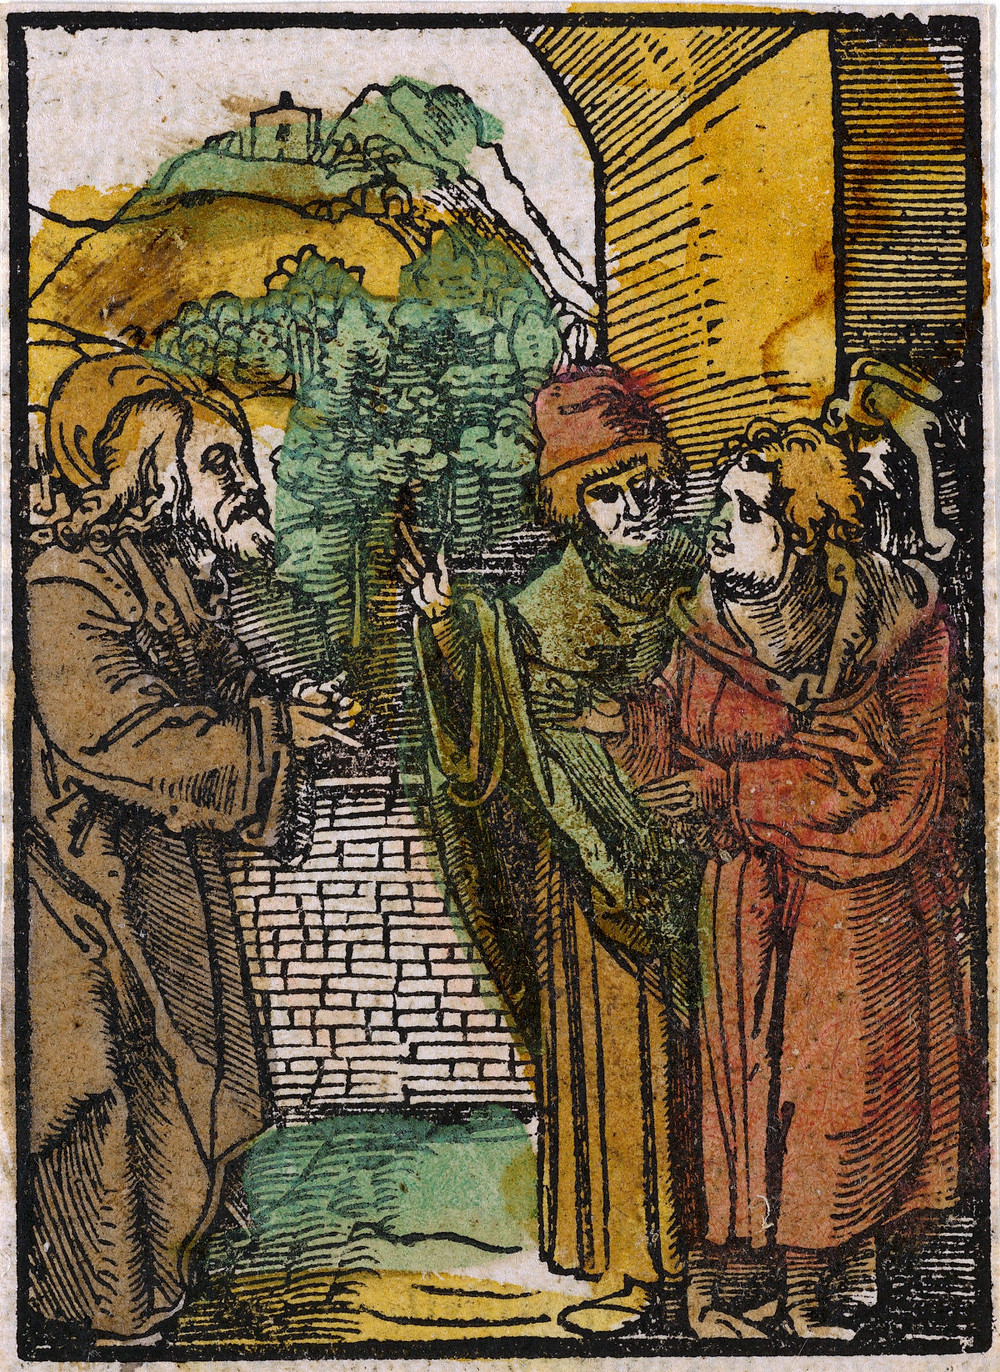 Christ and the Pharisees, from Das Plenarium; Hans Schäufelein (German, Nuremberg ca. 1480–ca. 1540 Nördlingen) 1517; Woodcut (hand-colored) Public Domain The Metropolitan Museum of Art